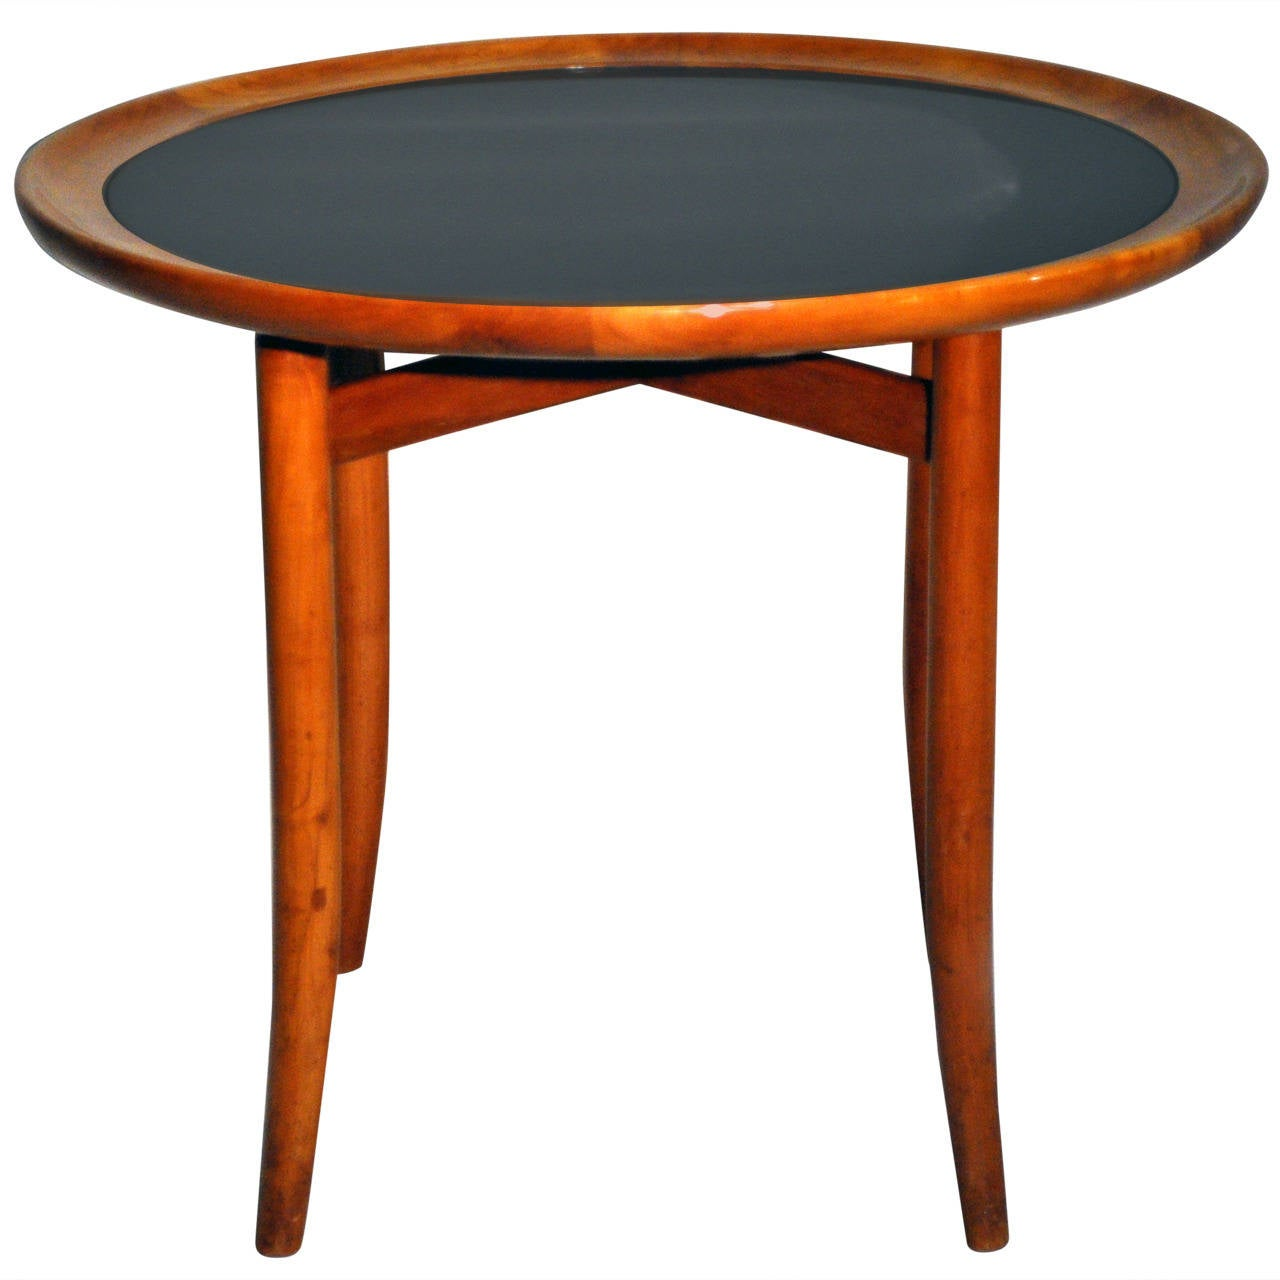 Art deco round tea table with black glass at 1stdibs for Glass tea table price